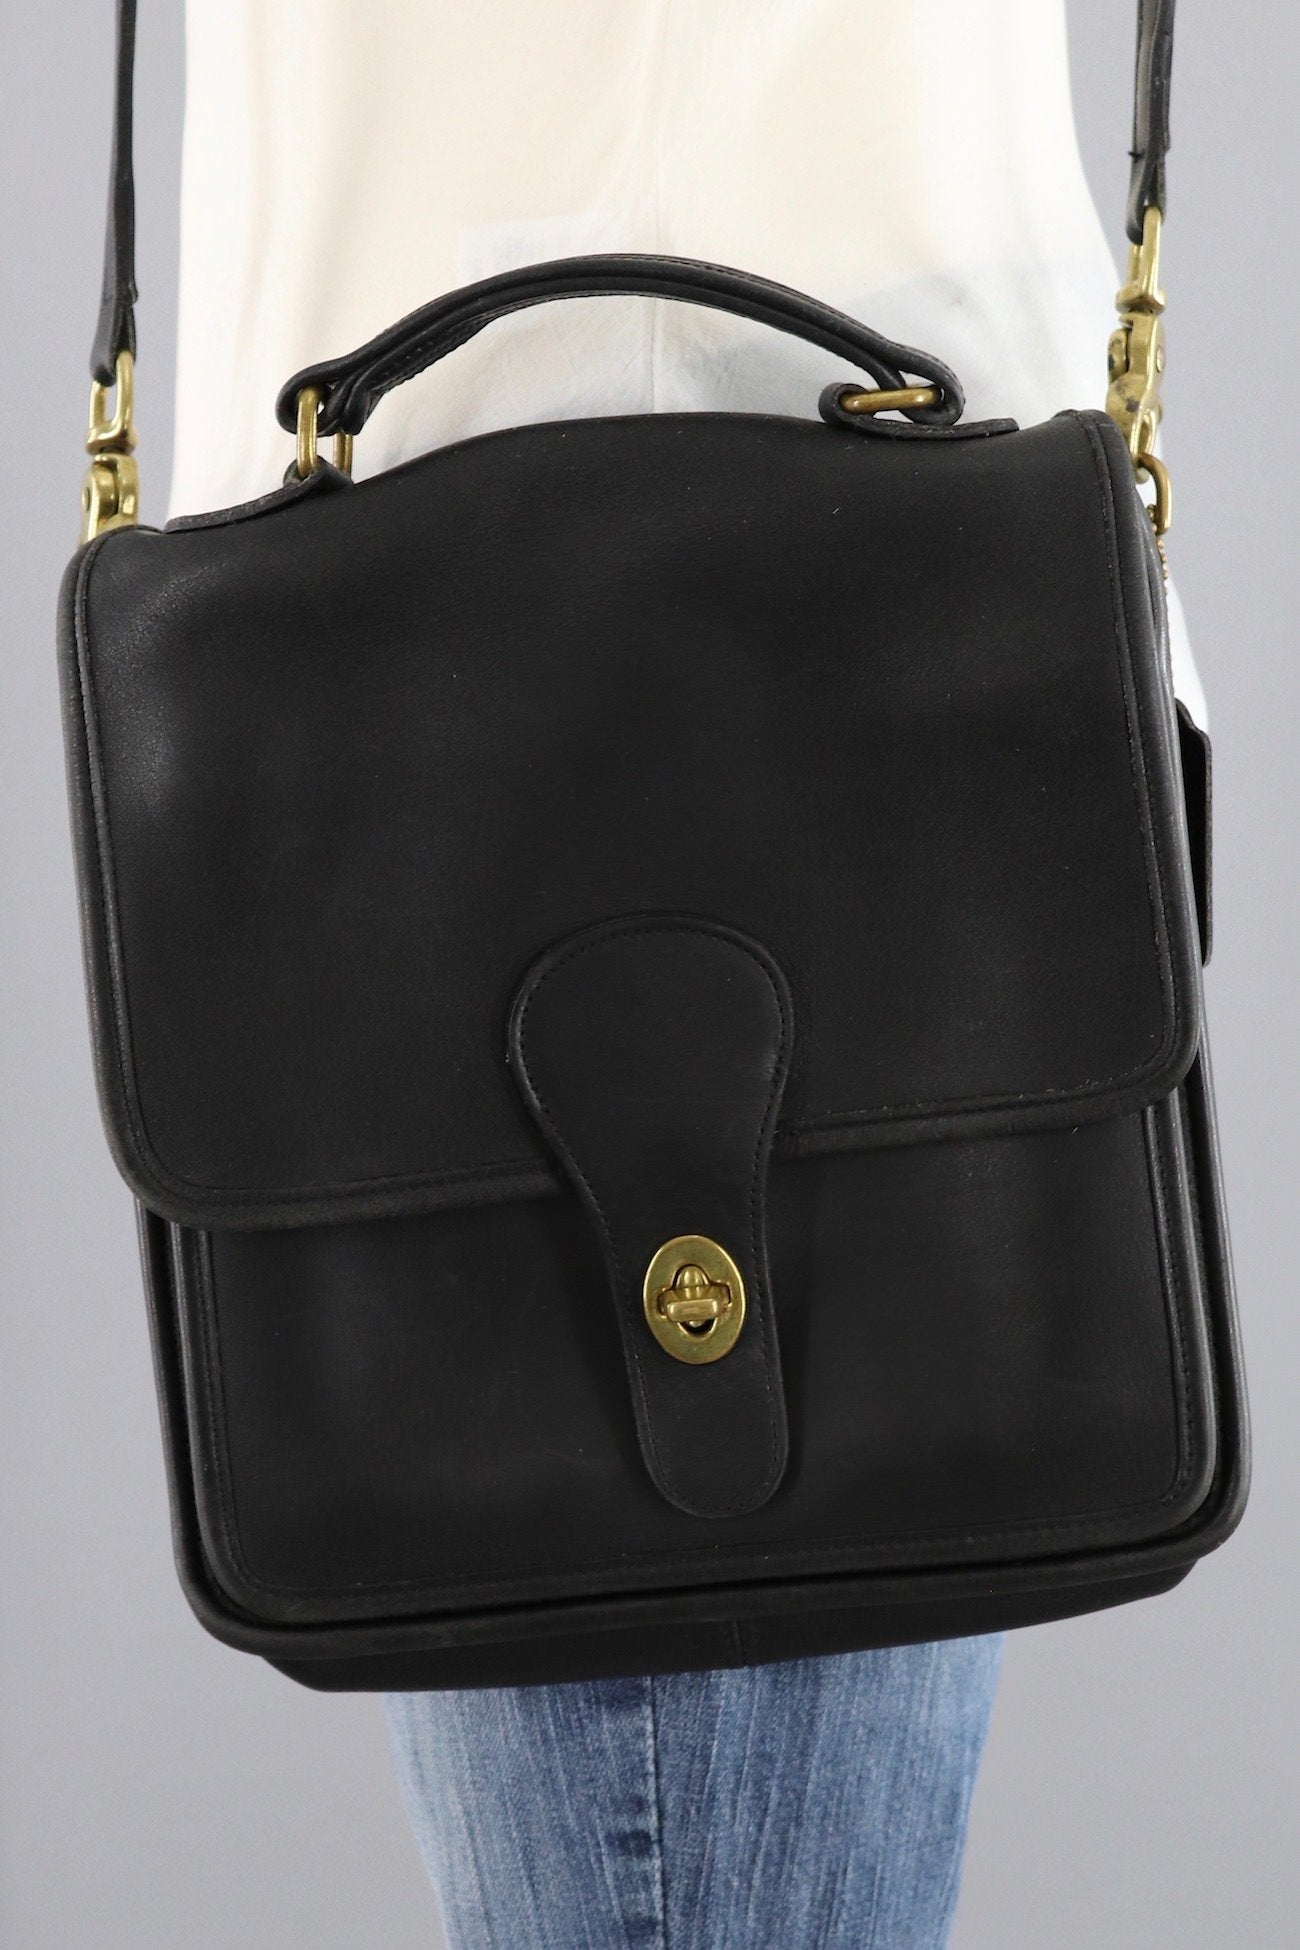 1f71b99314 Vintage coach small messenger bag black leather style a jpg 1300x1950 Leather  small vintage looking suitcase